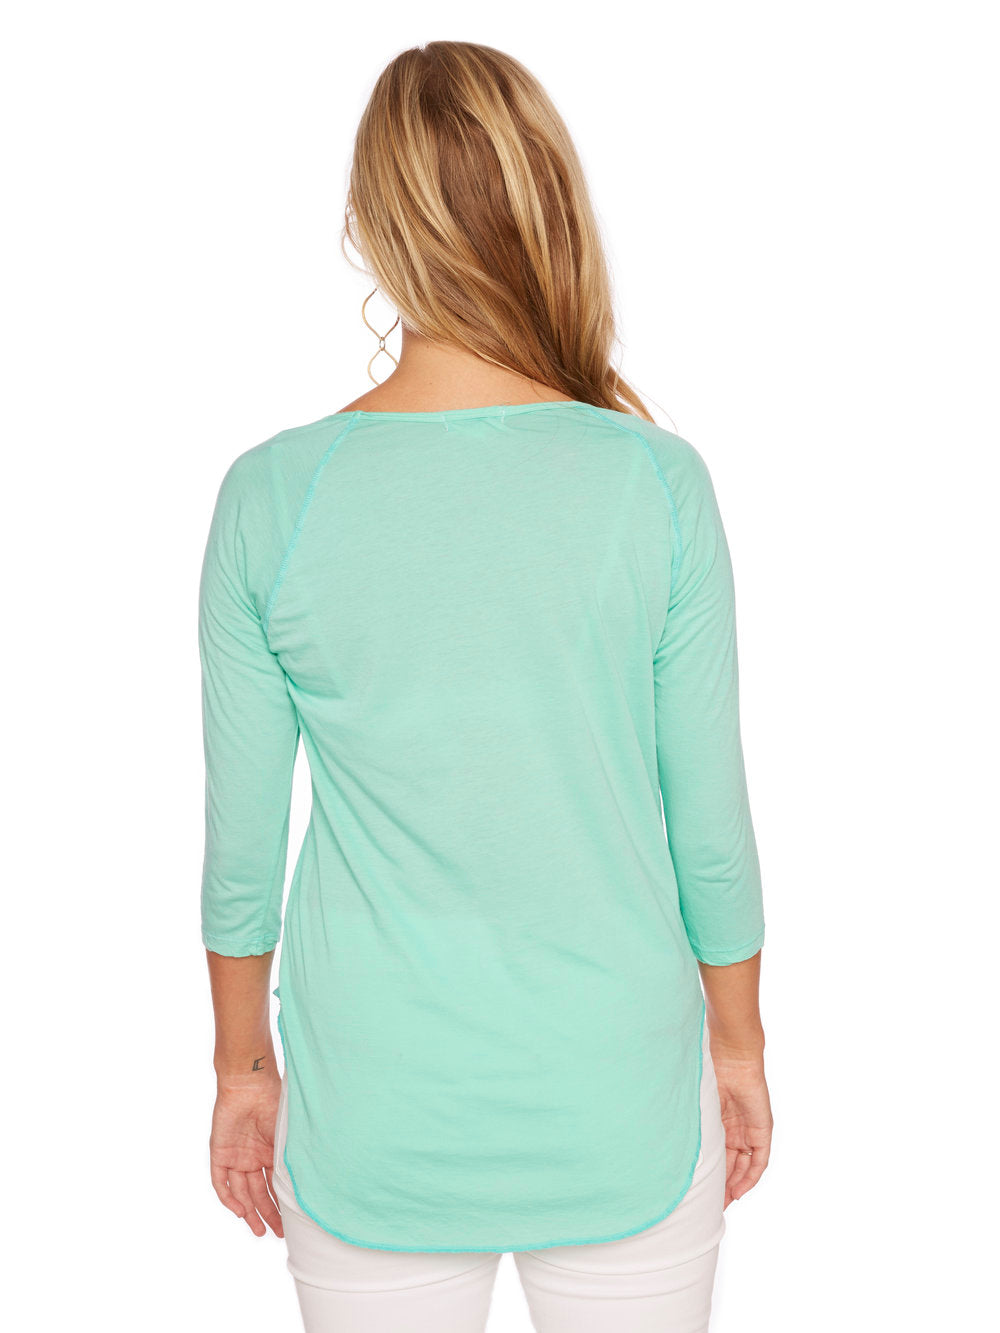 Saturday 3/4 Sleeve Raglan in Electric Green